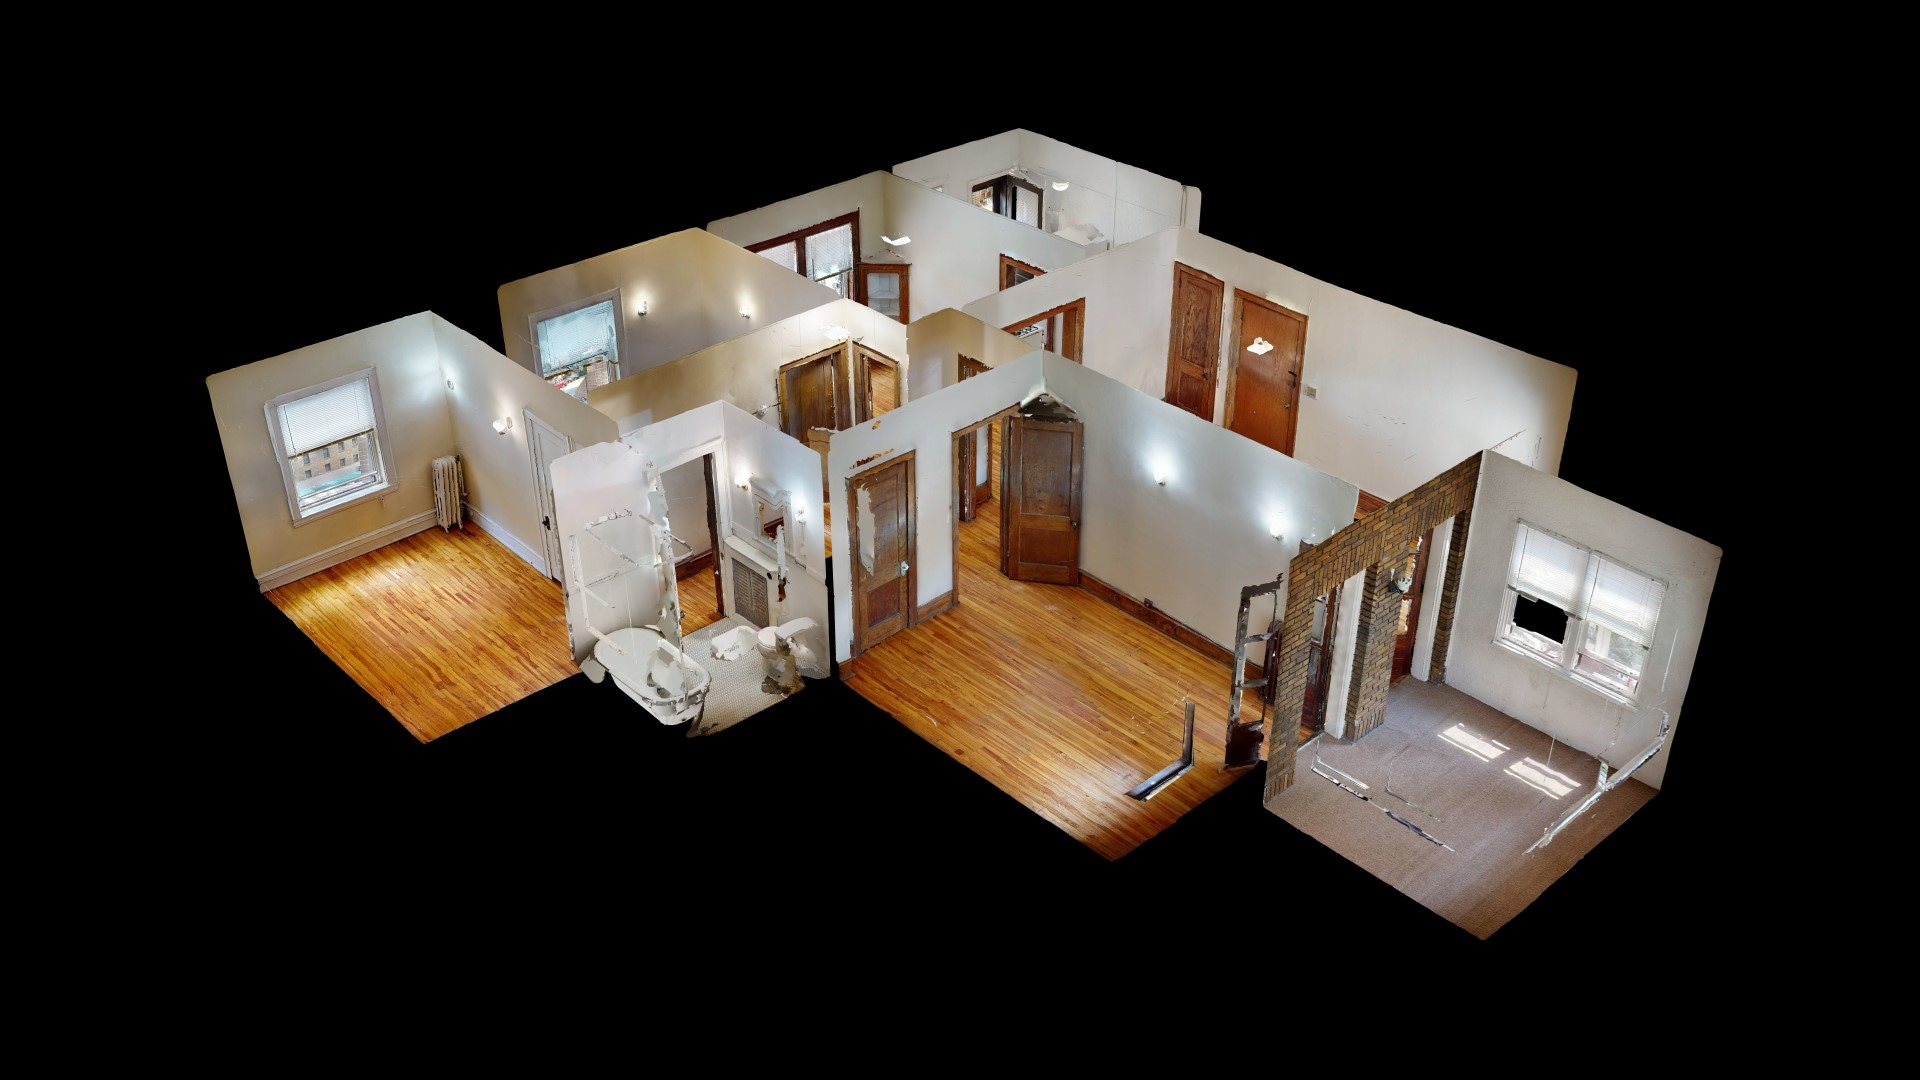 Sibley_3br_dollhouse view